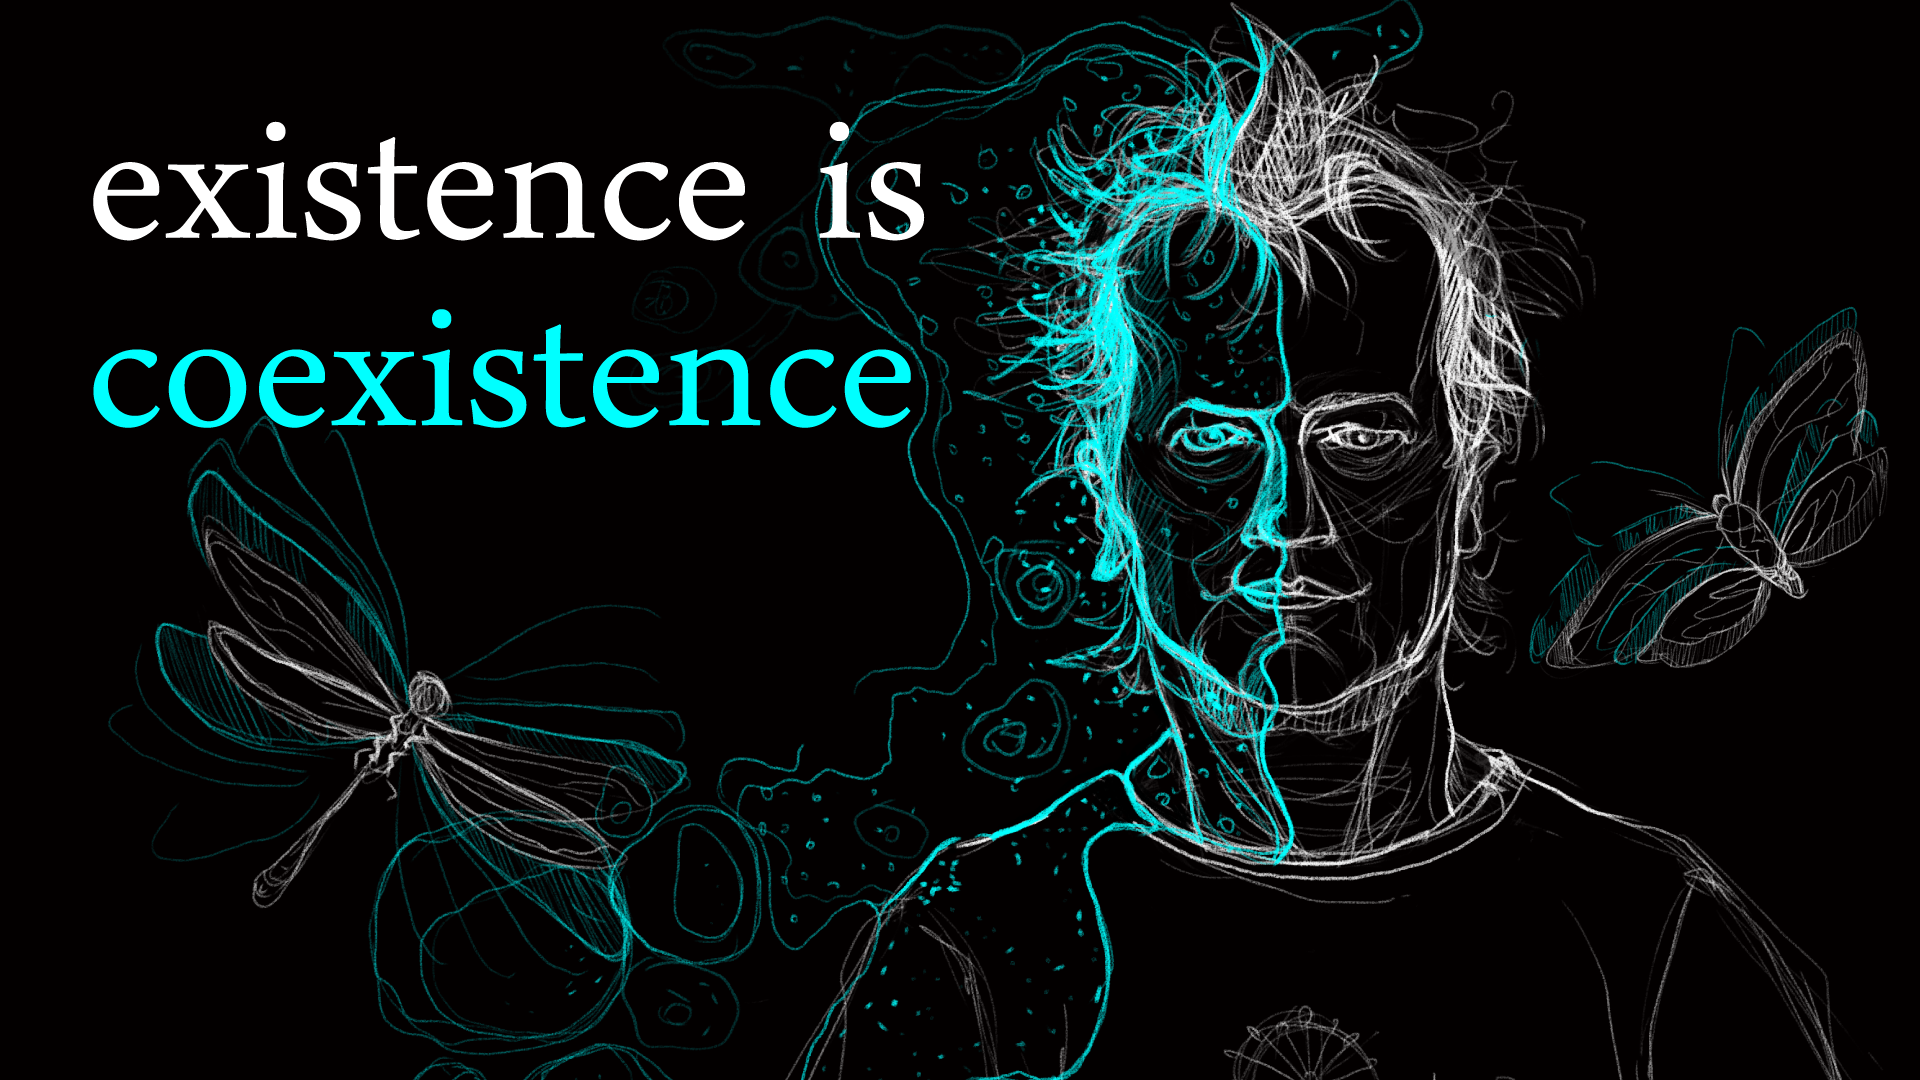 existence is coexistence